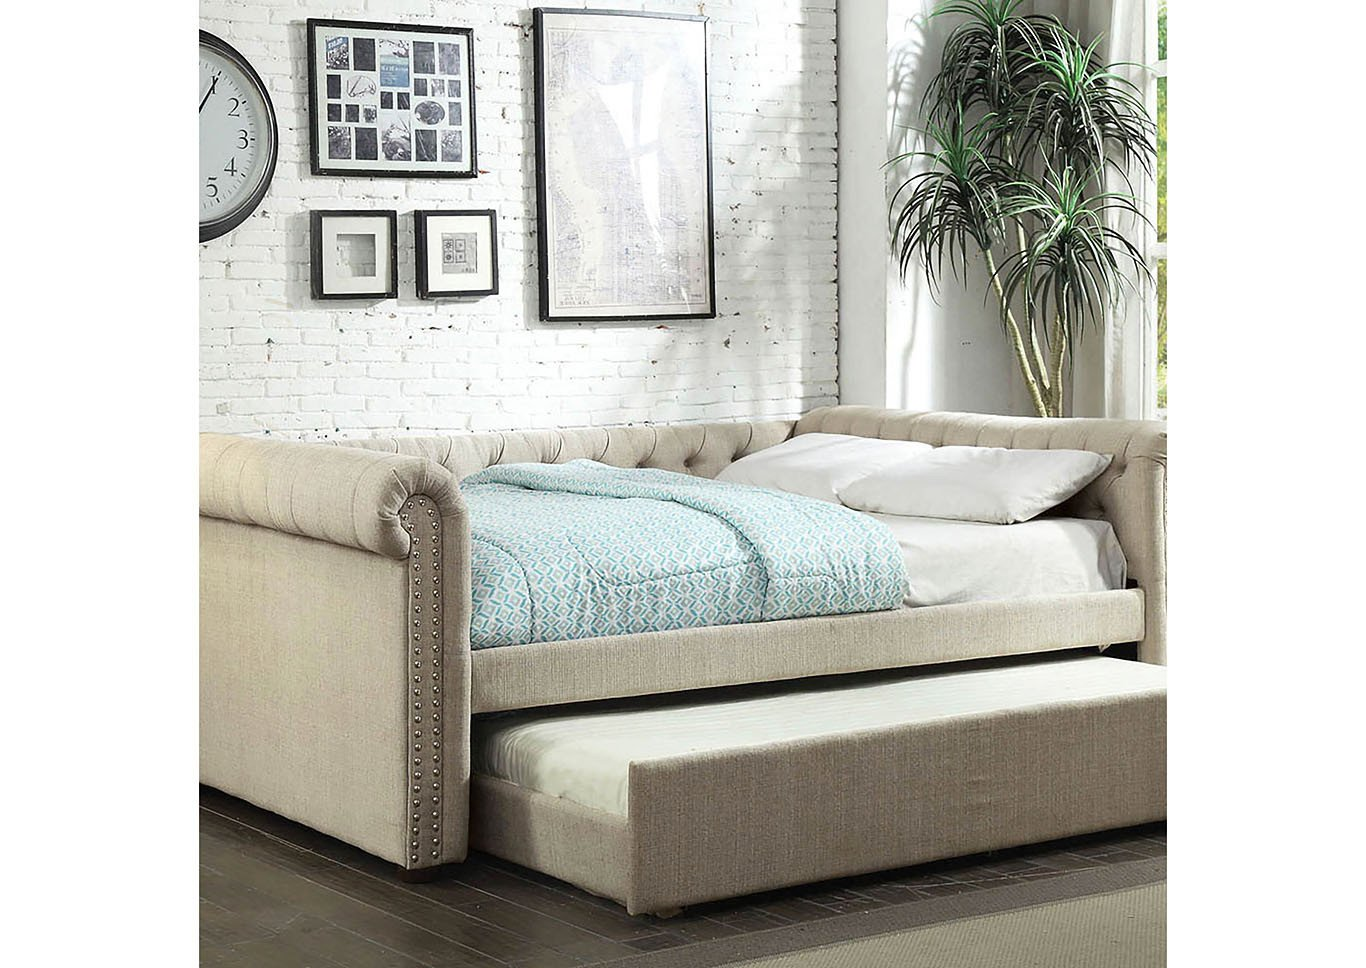 Twin Trundle Bedroom Set Unique Sans Midman Furniture Leanna Beige Queen Daybed W Trundle